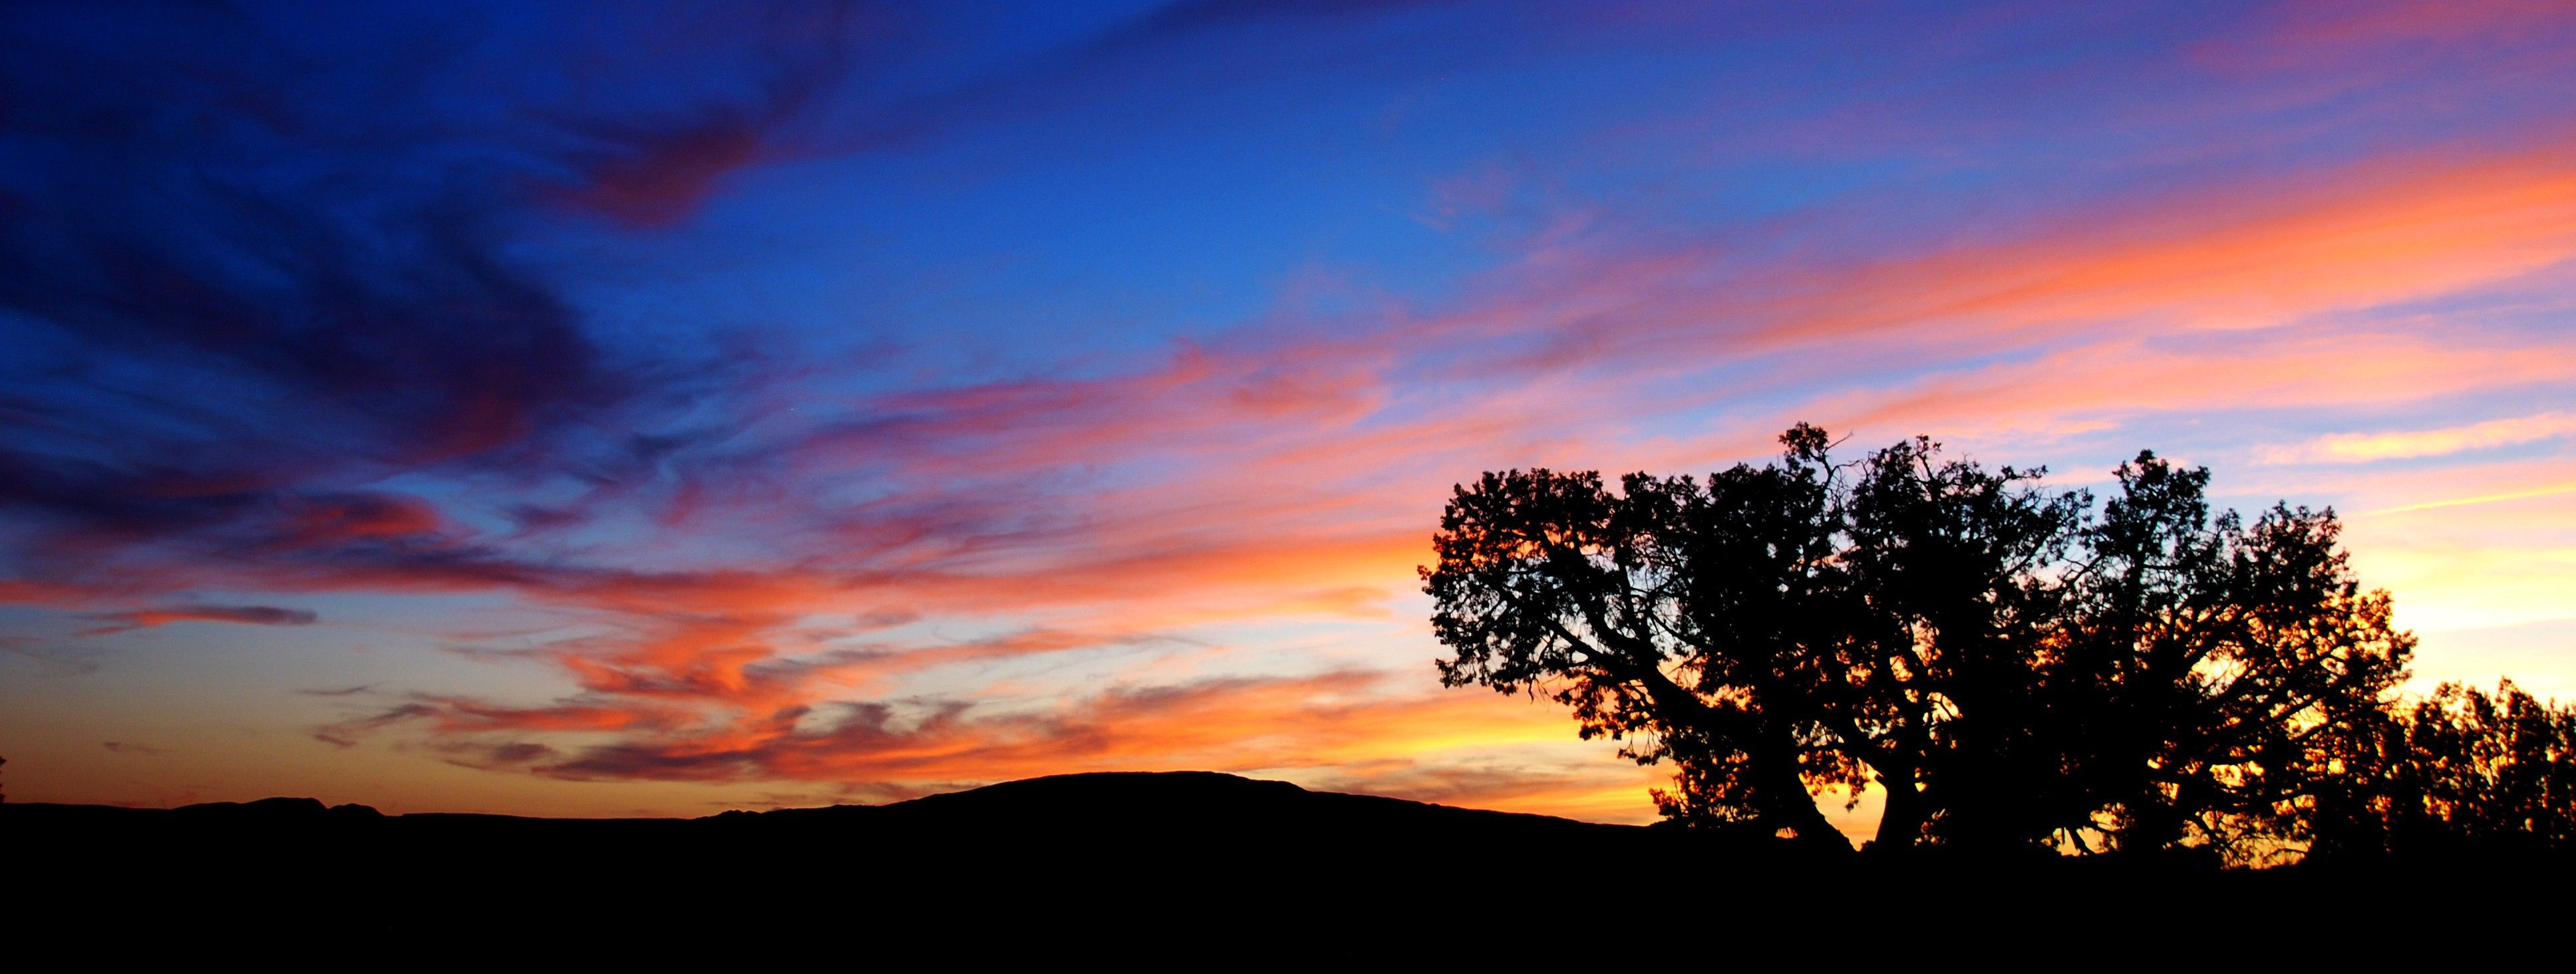 A large tree is silhouetted by a sunset.